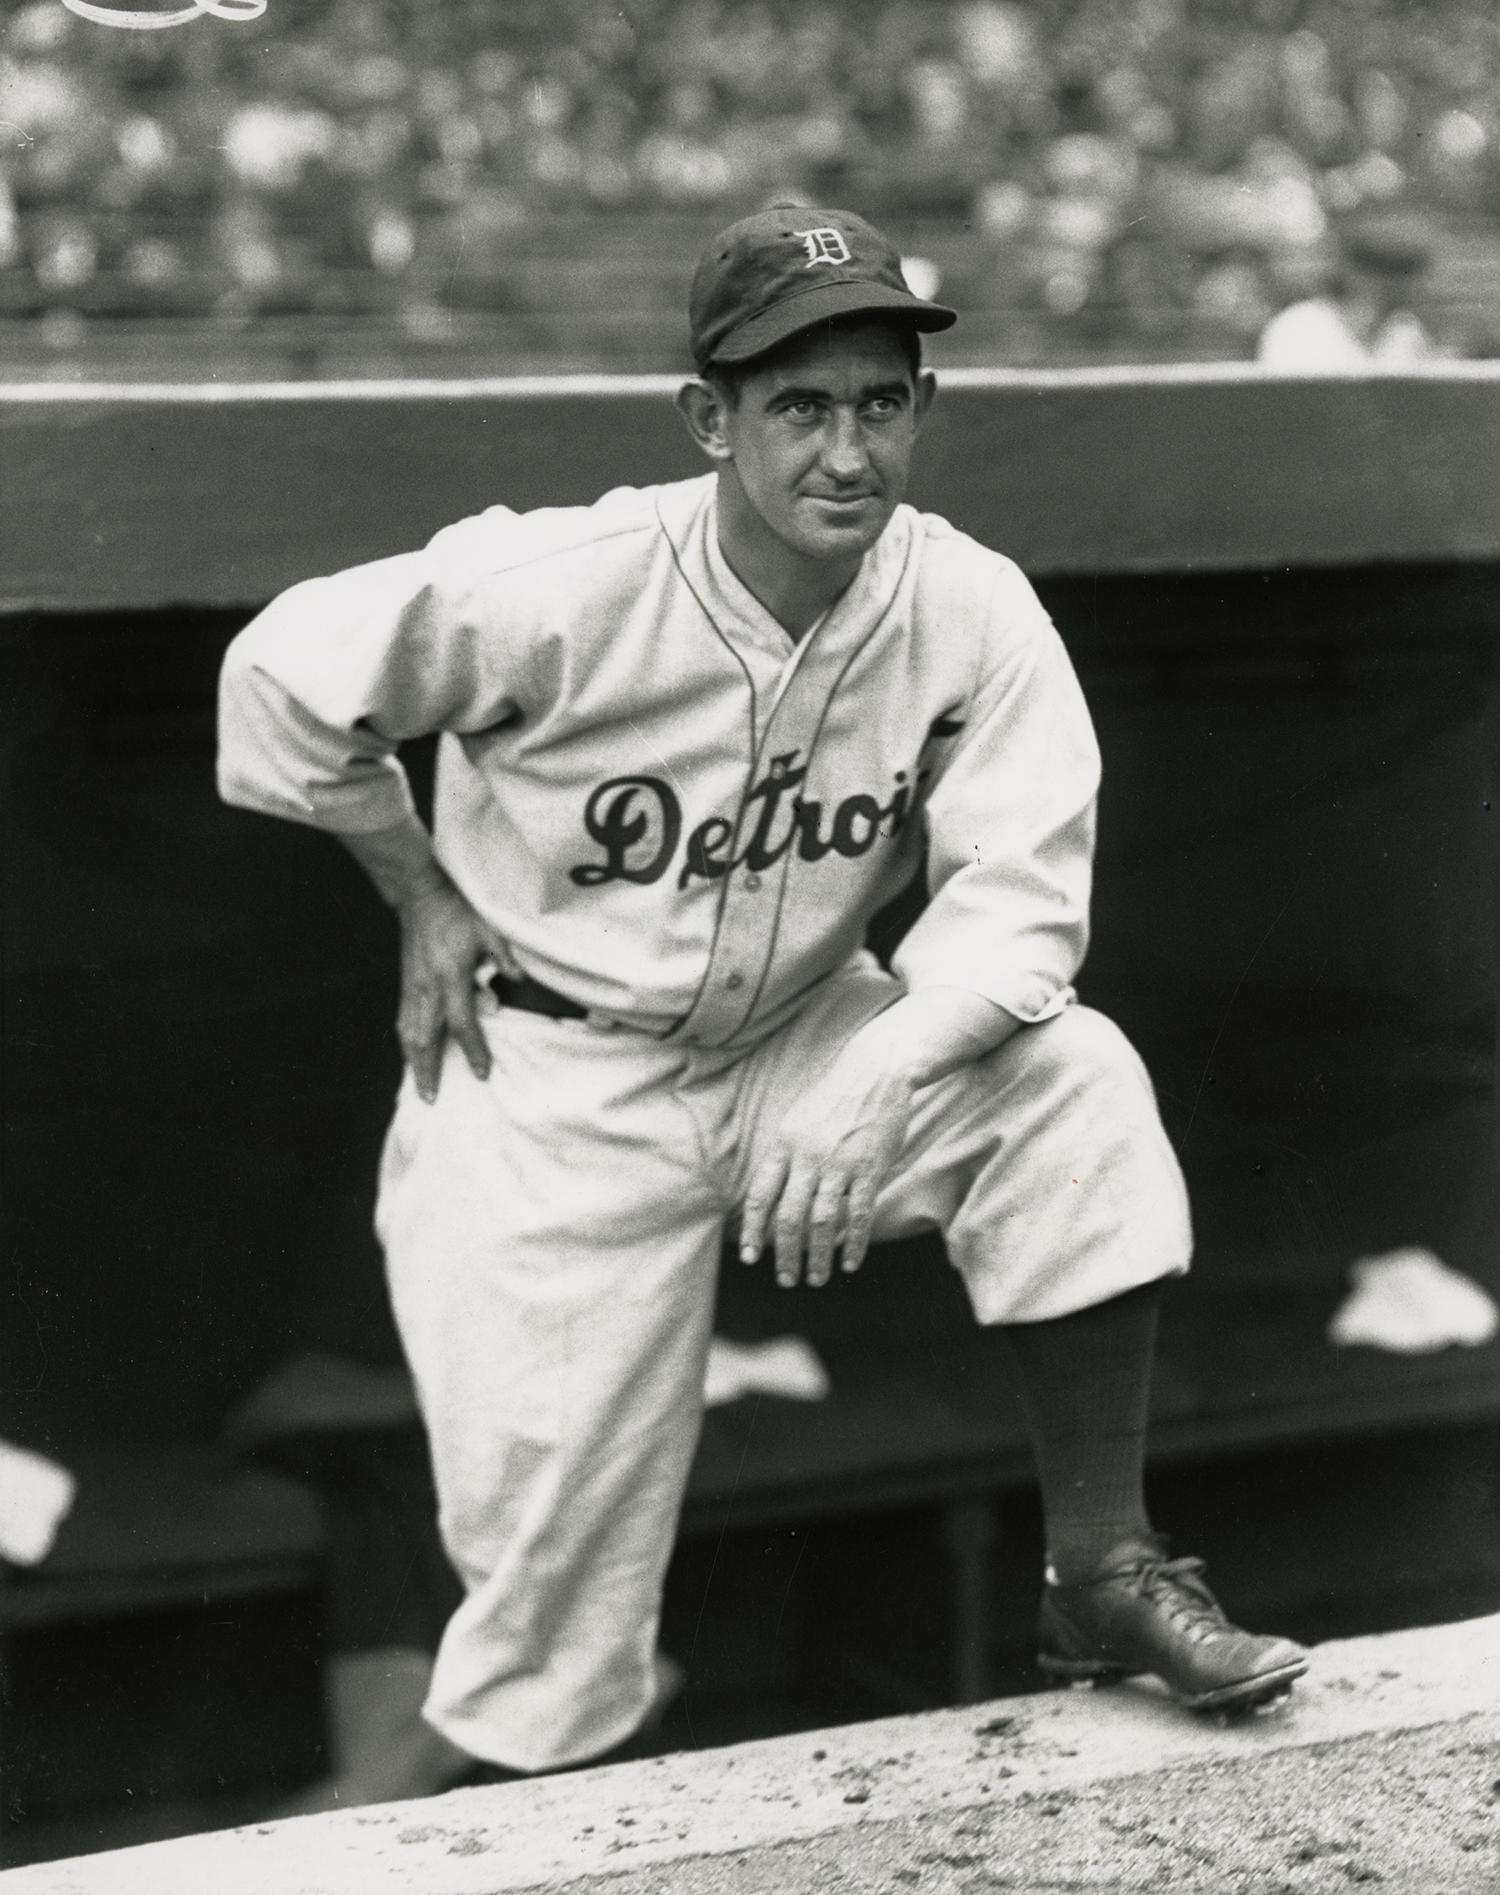 Mickey Cochrane's Hall of Fame playing career came to an end after he was beaned by a pitcher in 1937. The impetus for yellow baseballs came from New York color engineer Frederic H. Rahr, who developed it after Cochrane's accident. (National Baseball Hall of Fame and Museum)